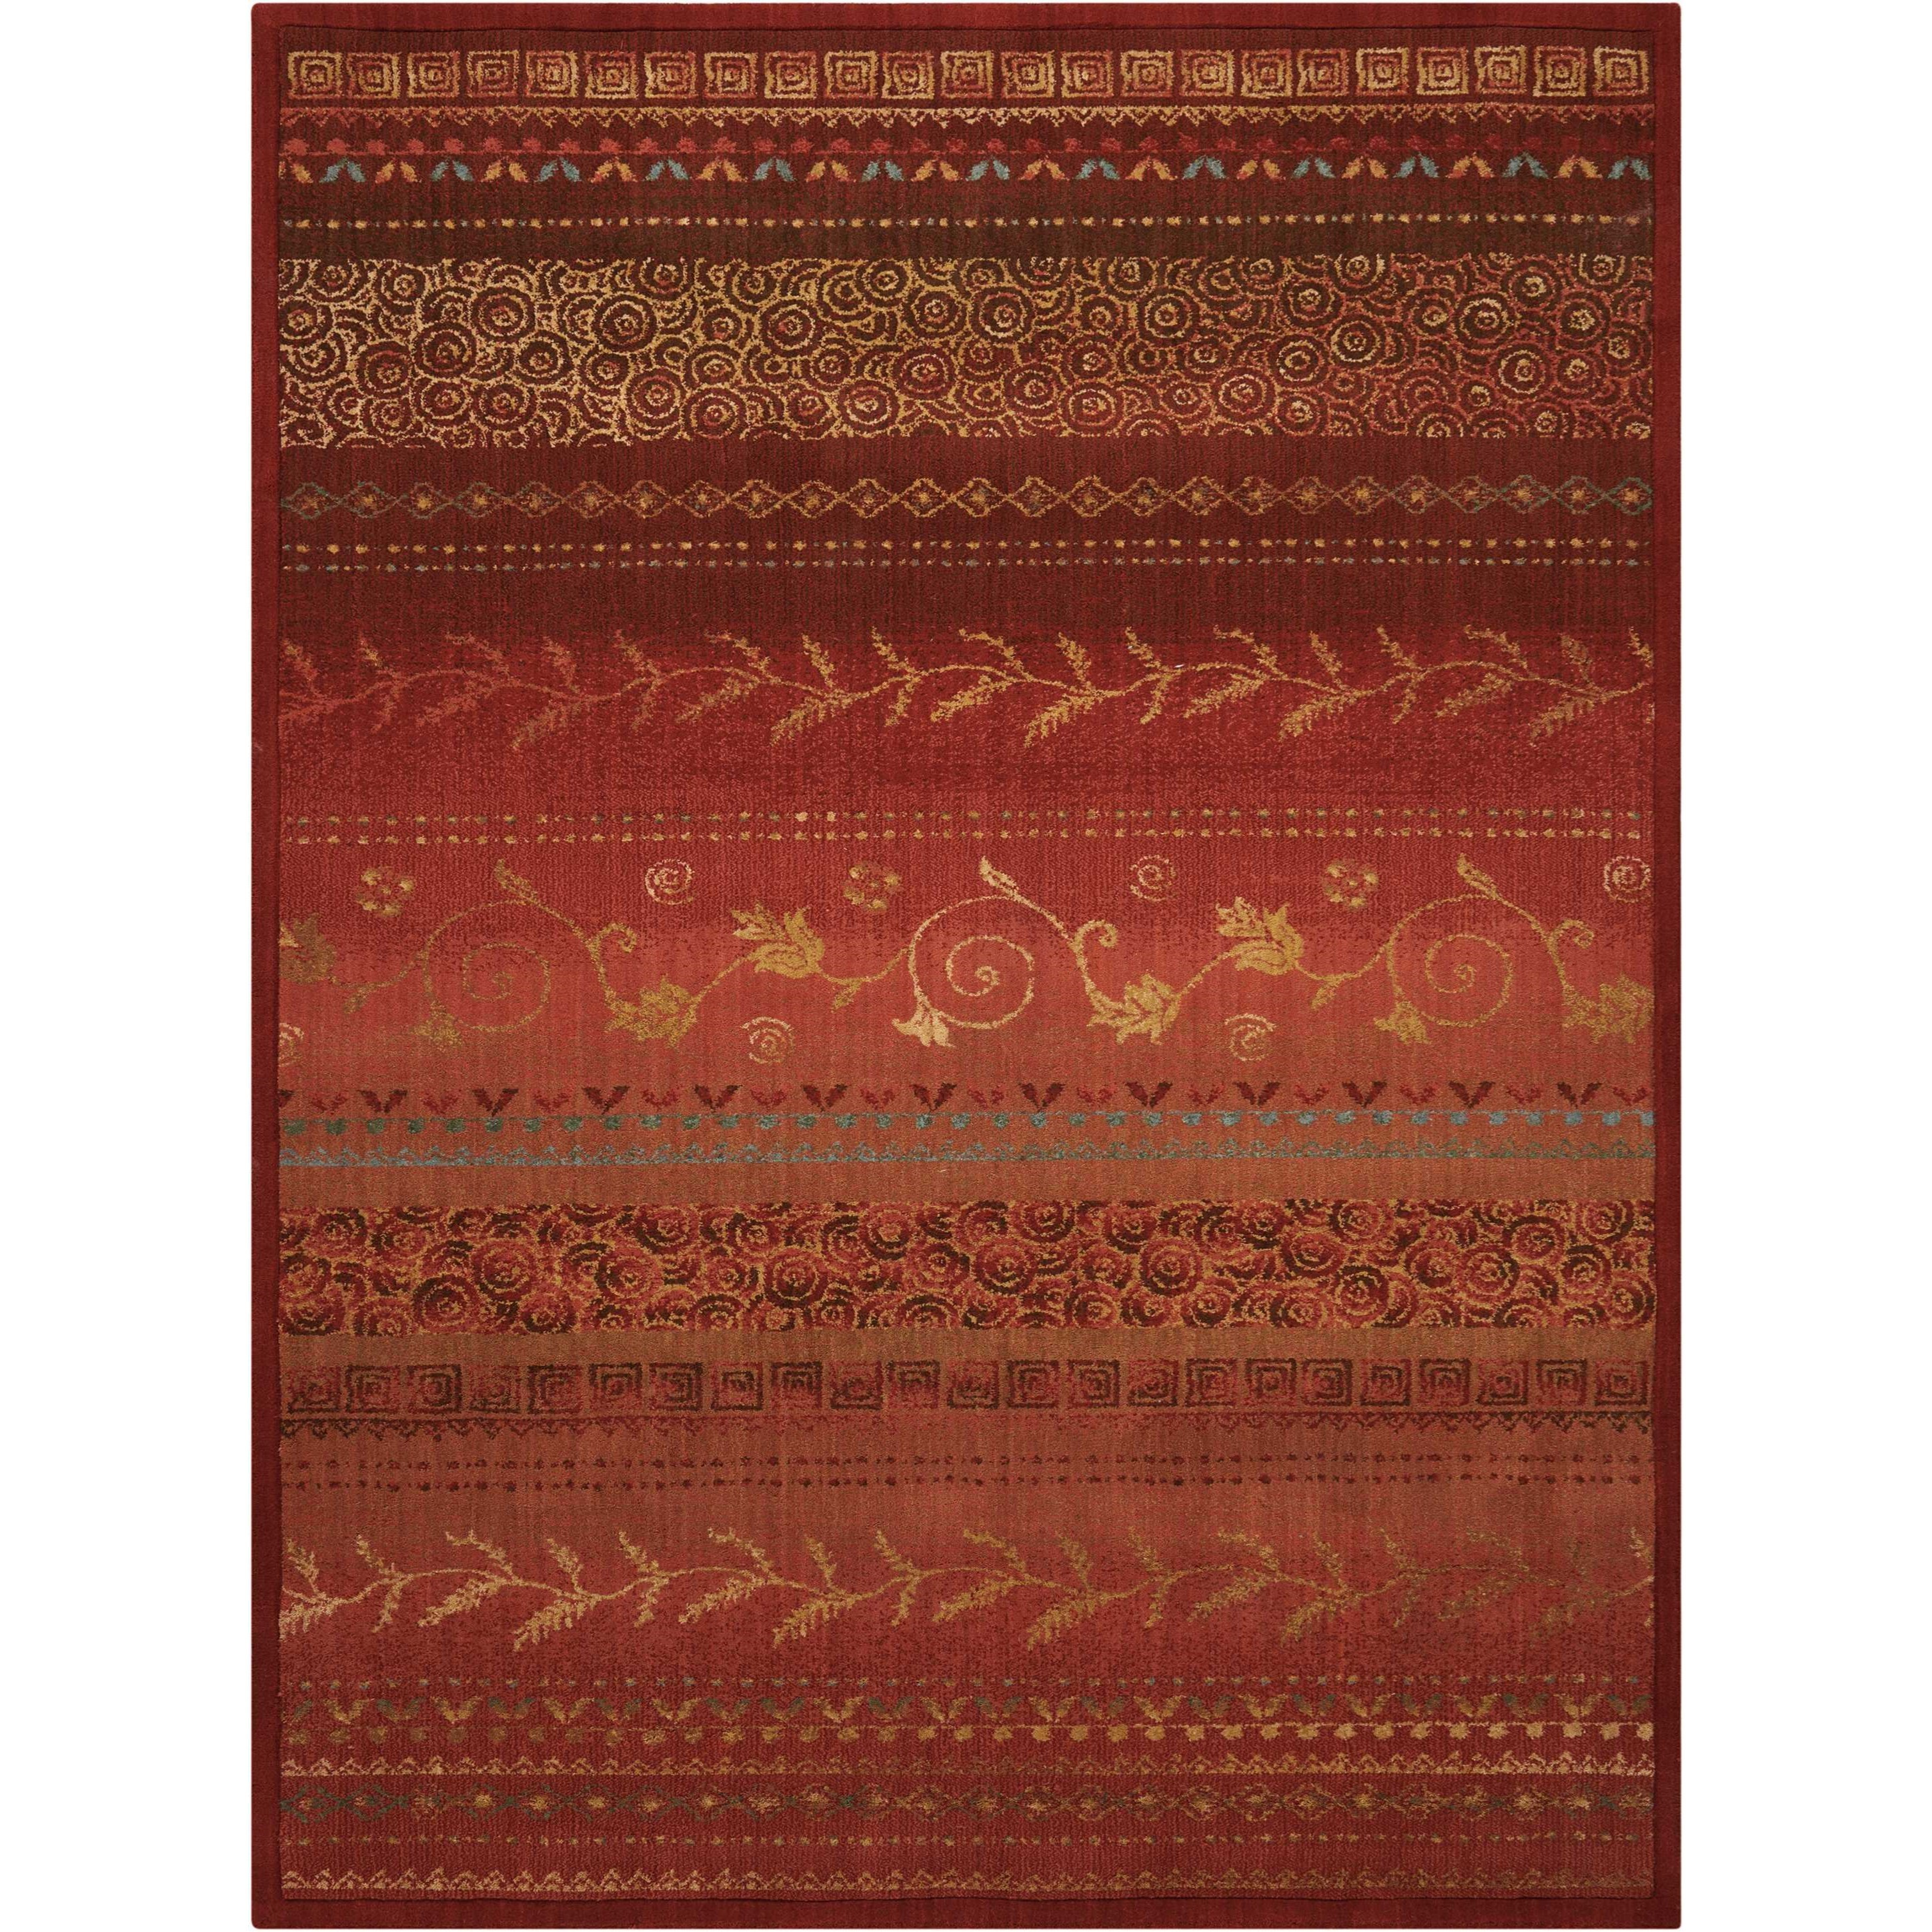 """Radiant Impression 5'6"""" x 7'5"""" Crimson Rectangle Rug by Nourison at Home Collections Furniture"""